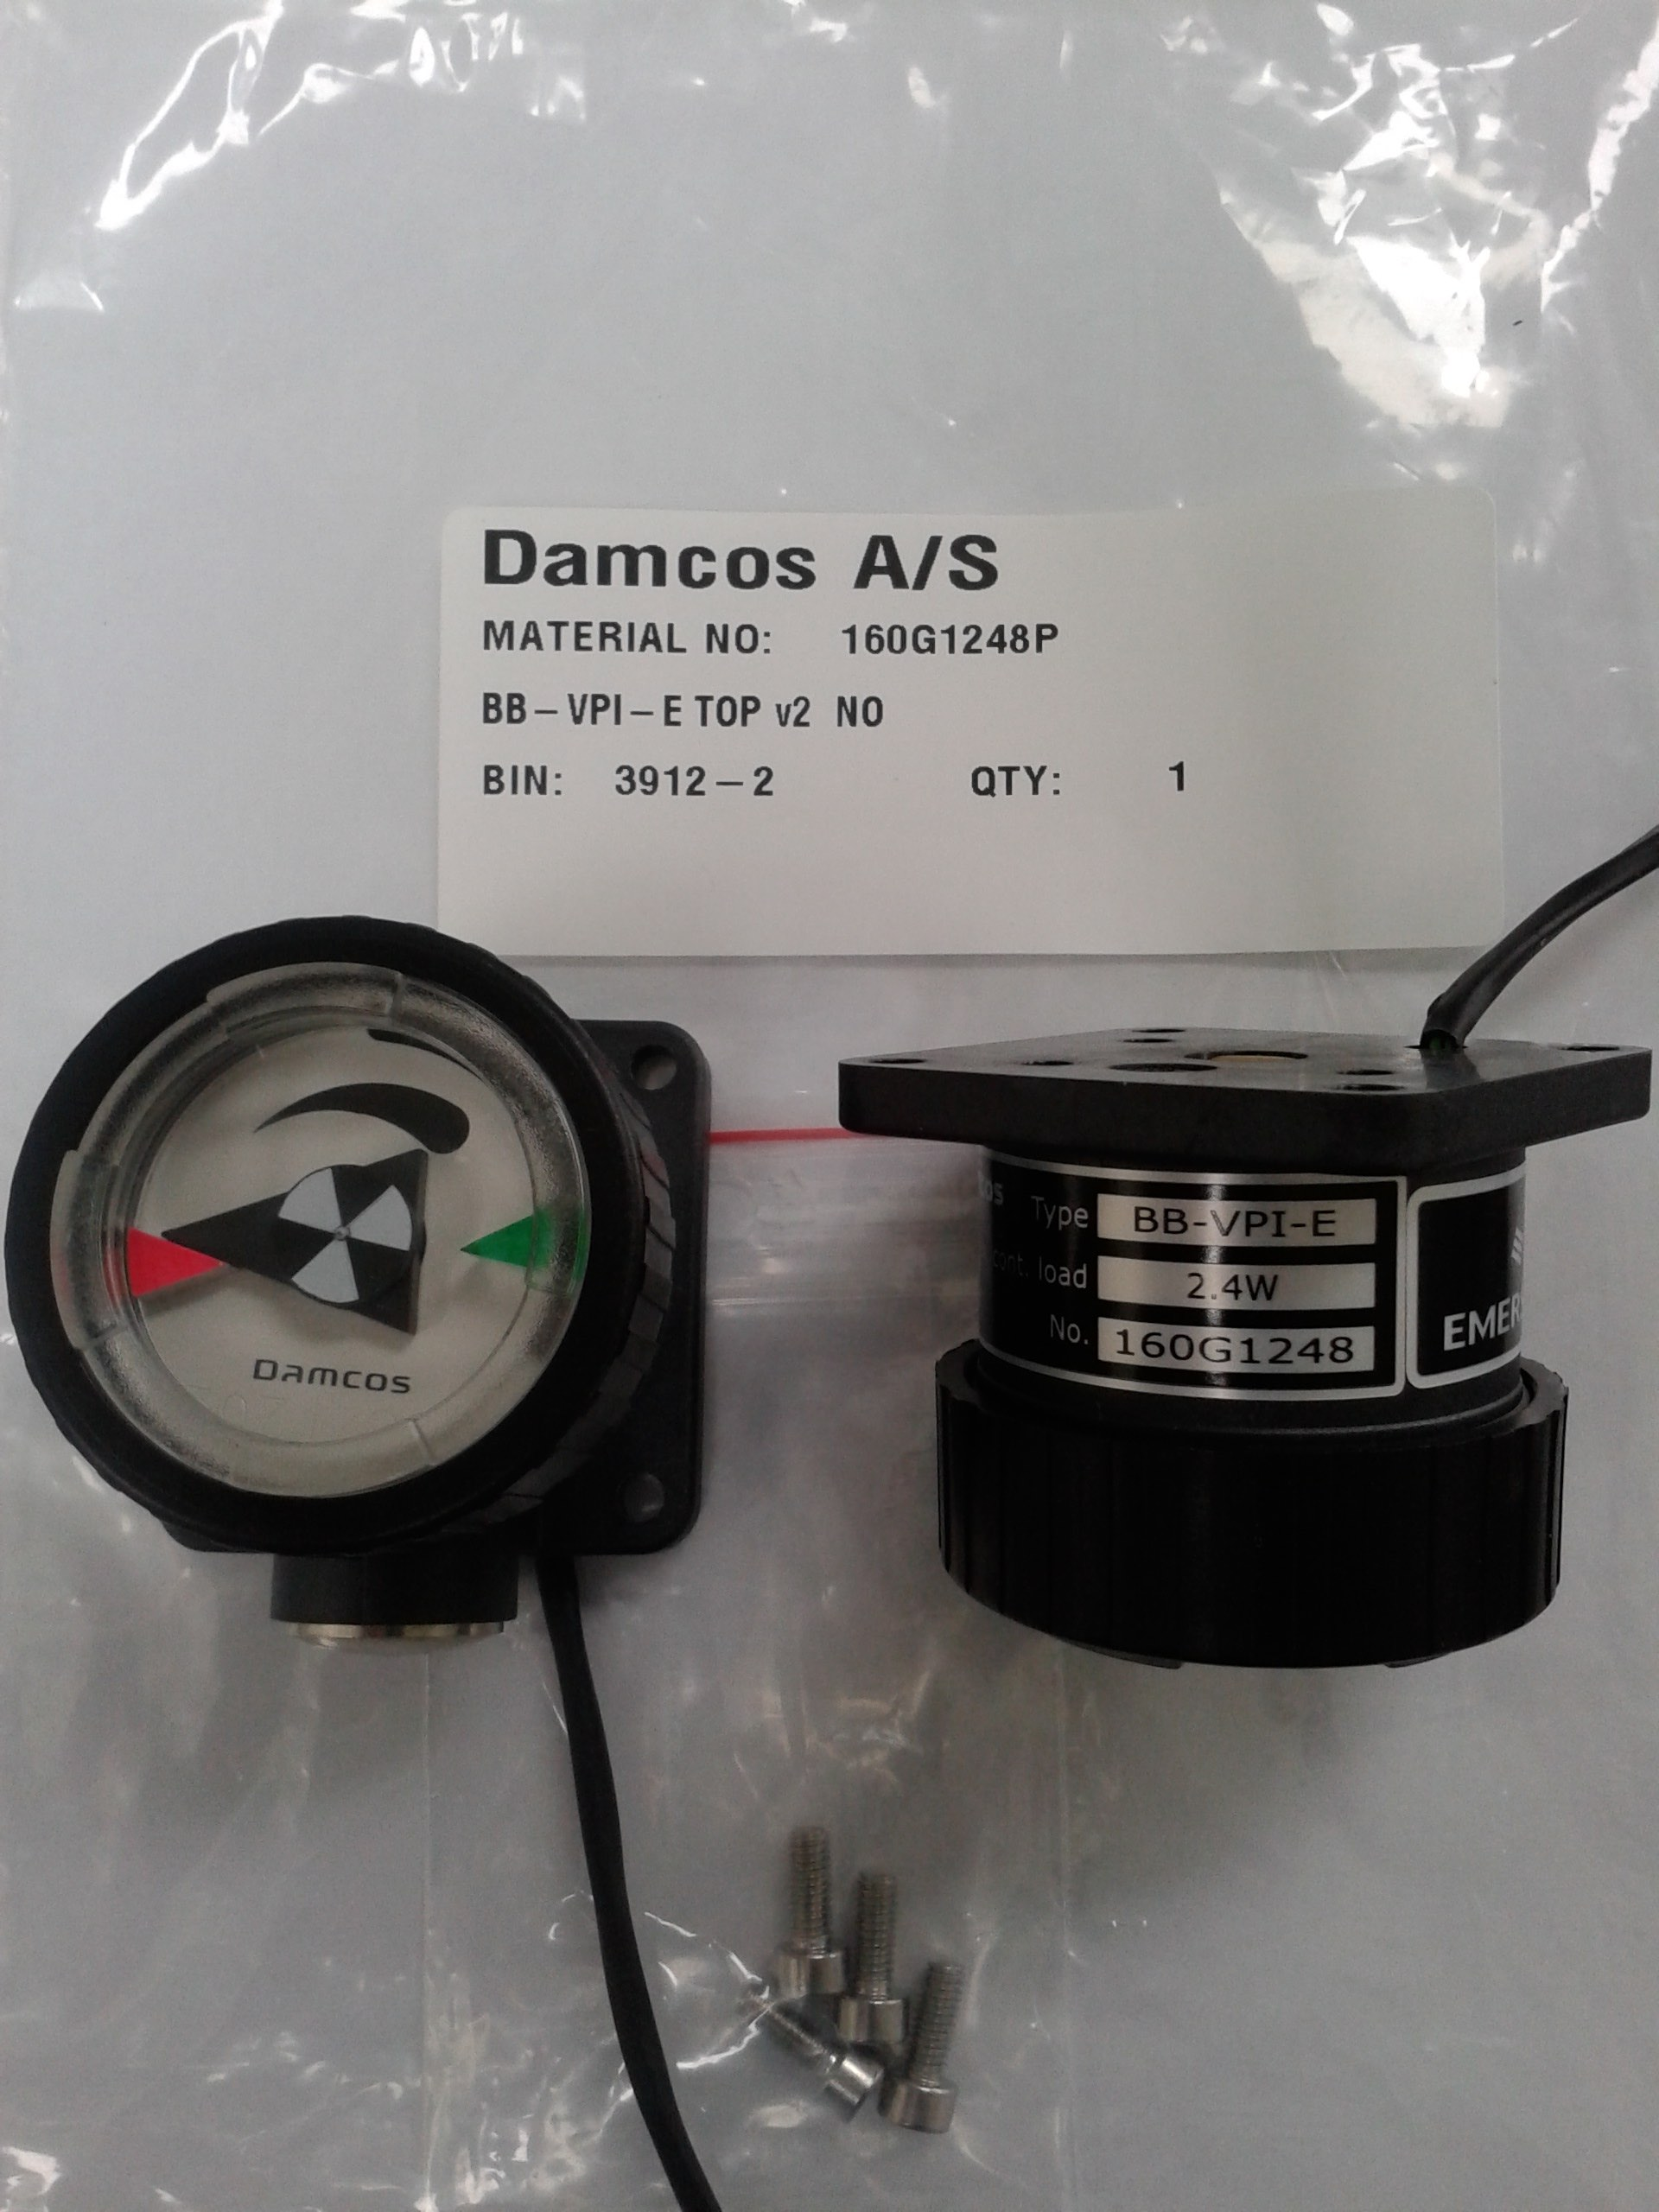 Damcos-Danfoss-BB-VPI-E-TOP-V2-160G1248P